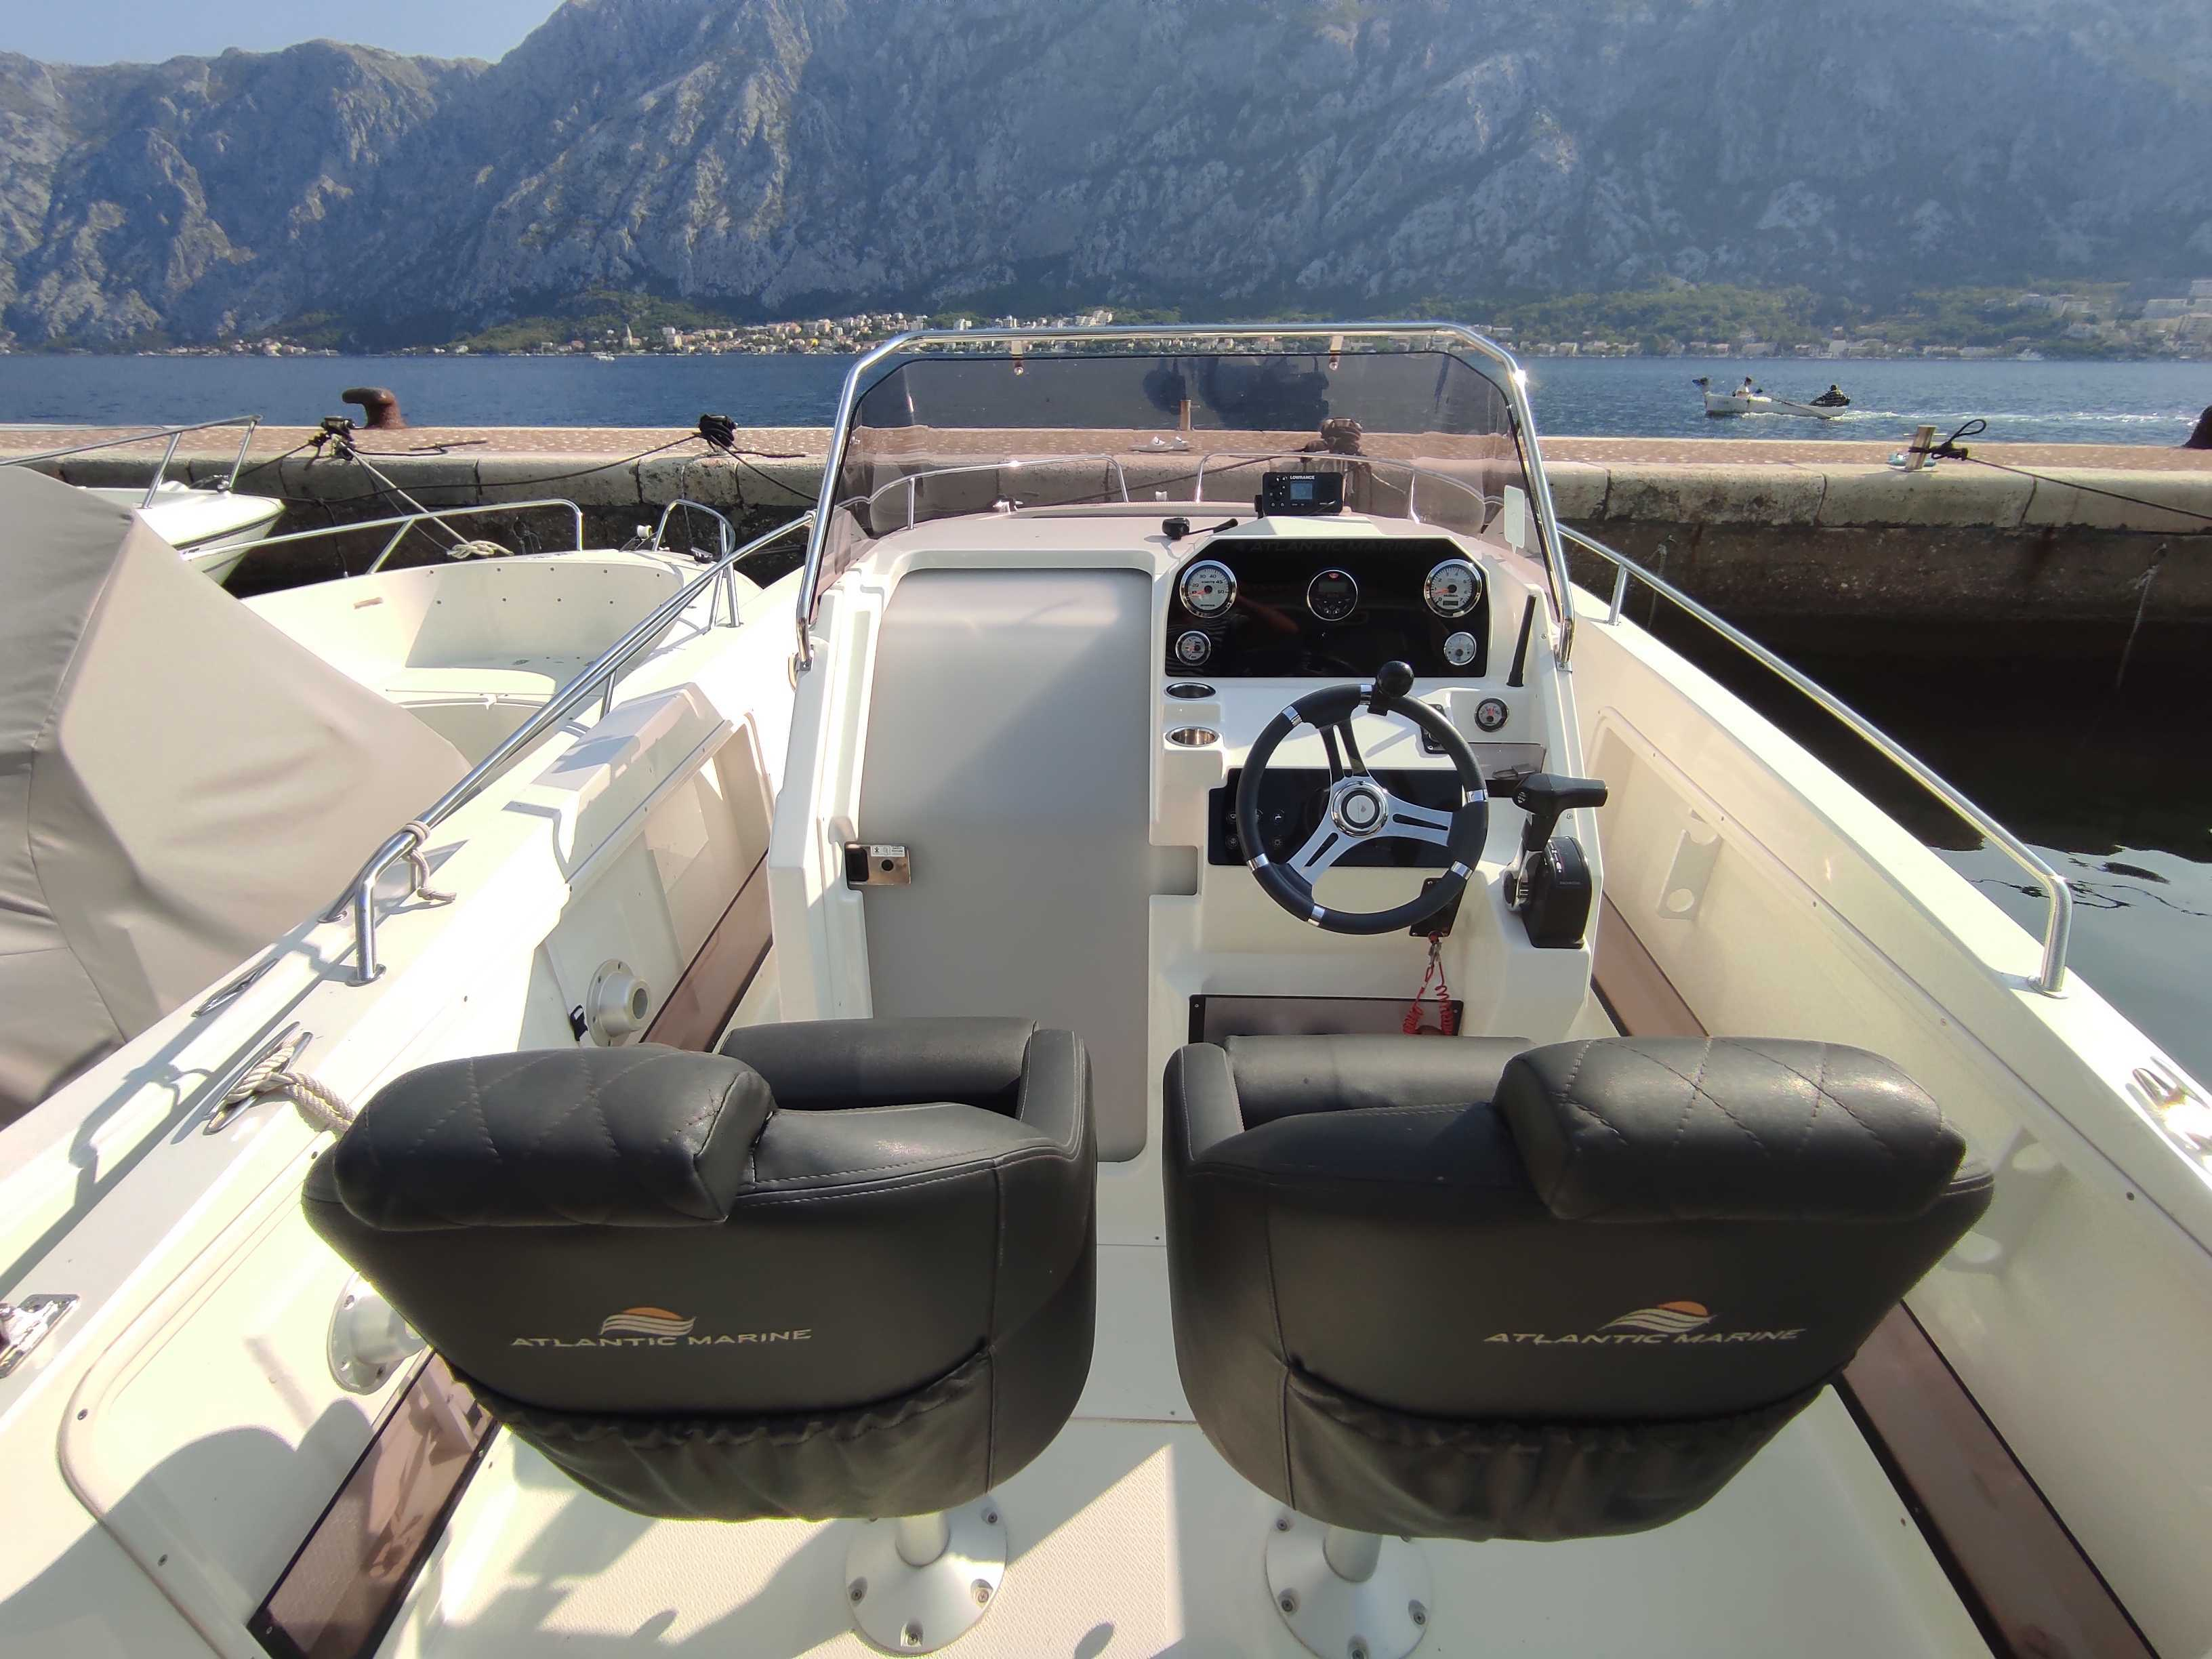 Atlantic 750 Open (Atlantic Marine Open 750) Interior image - 3